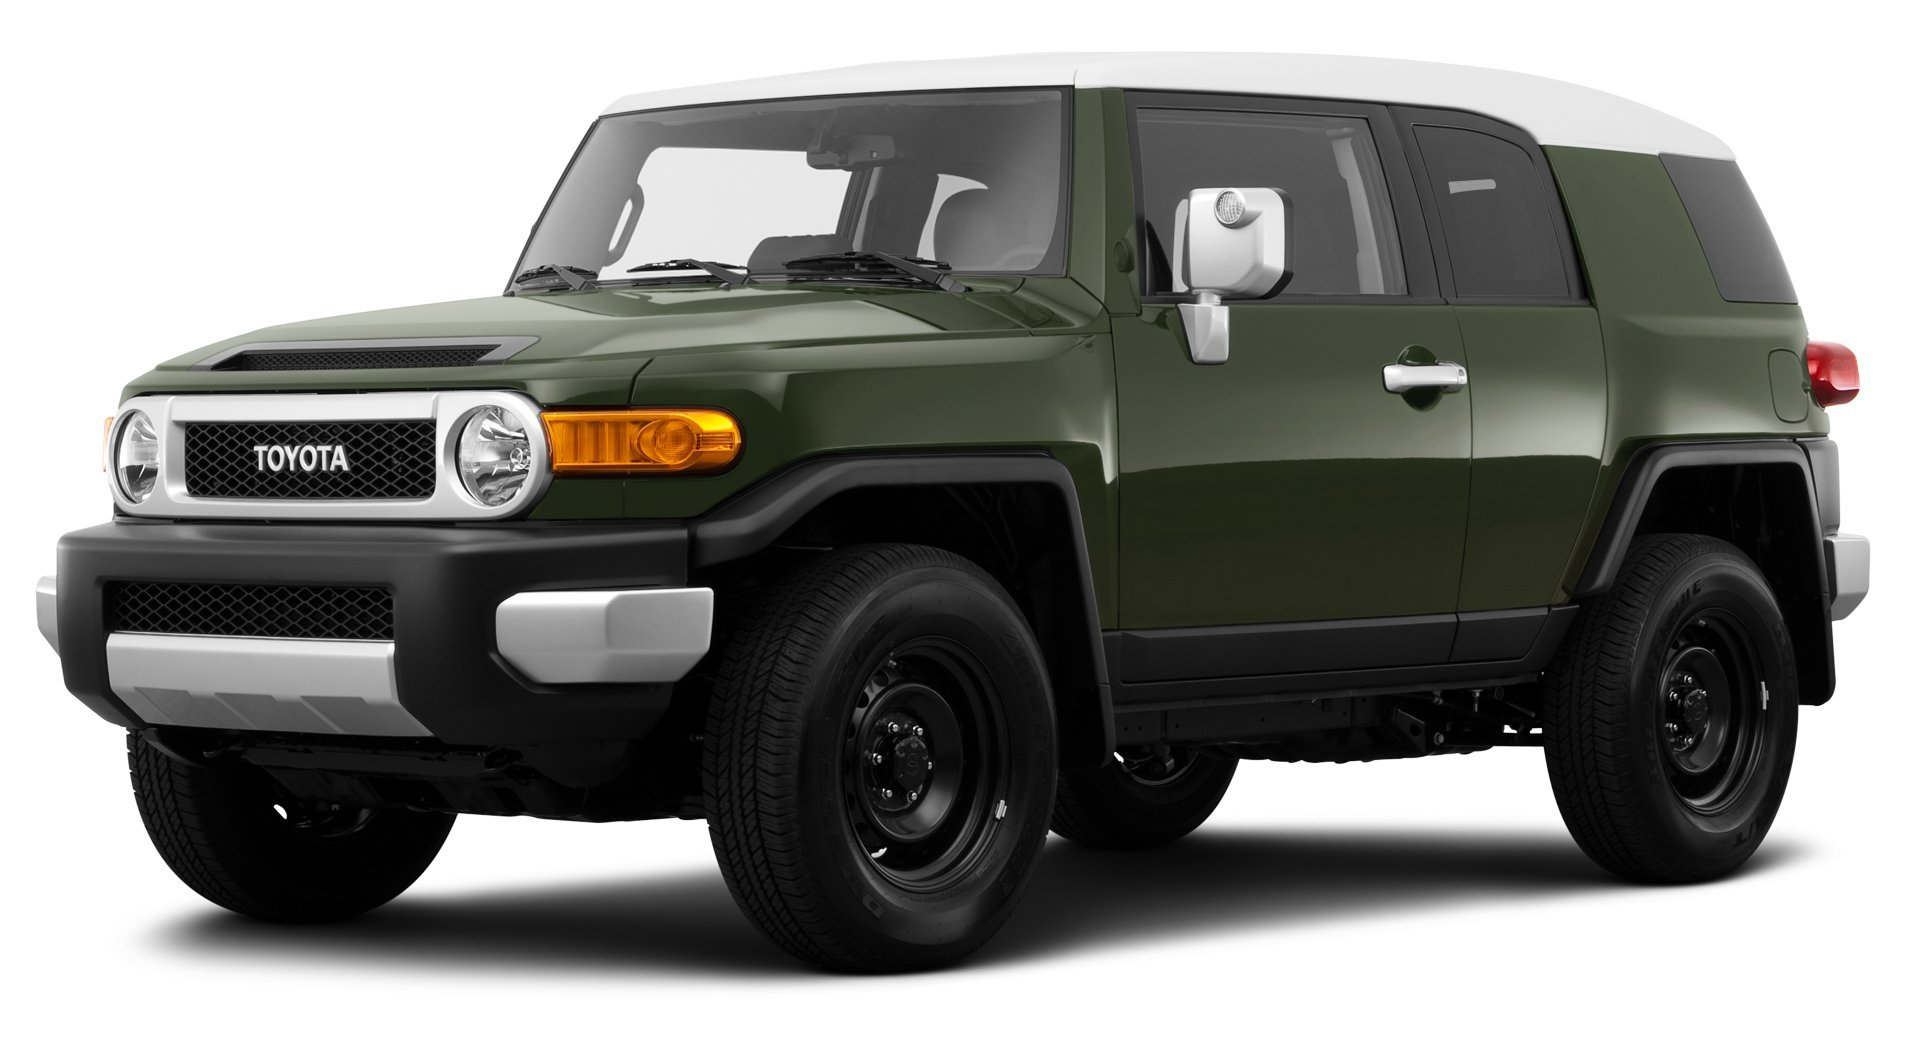 2014 toyota fj cruiser reviews images and specs vehicles. Black Bedroom Furniture Sets. Home Design Ideas